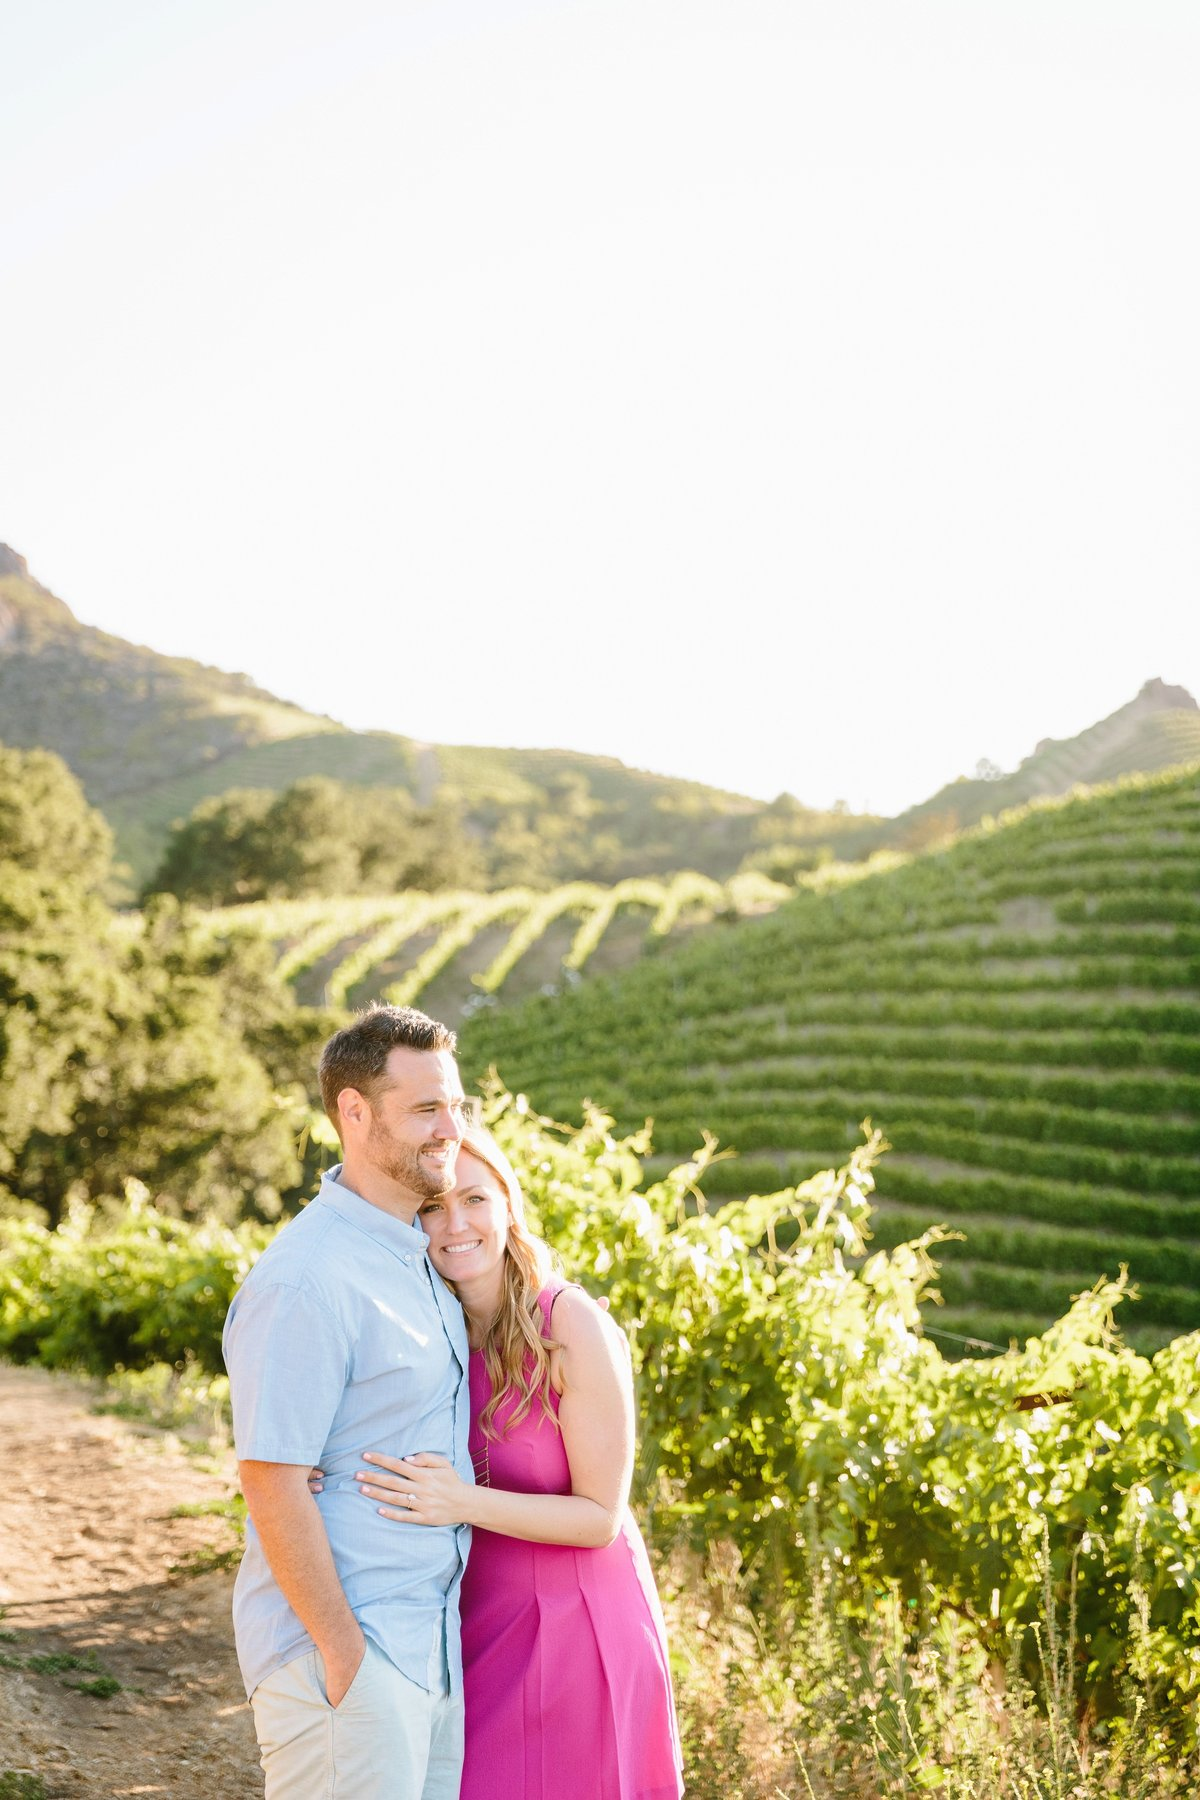 Best California Engagement Photographer_Jodee Debes Photography_148